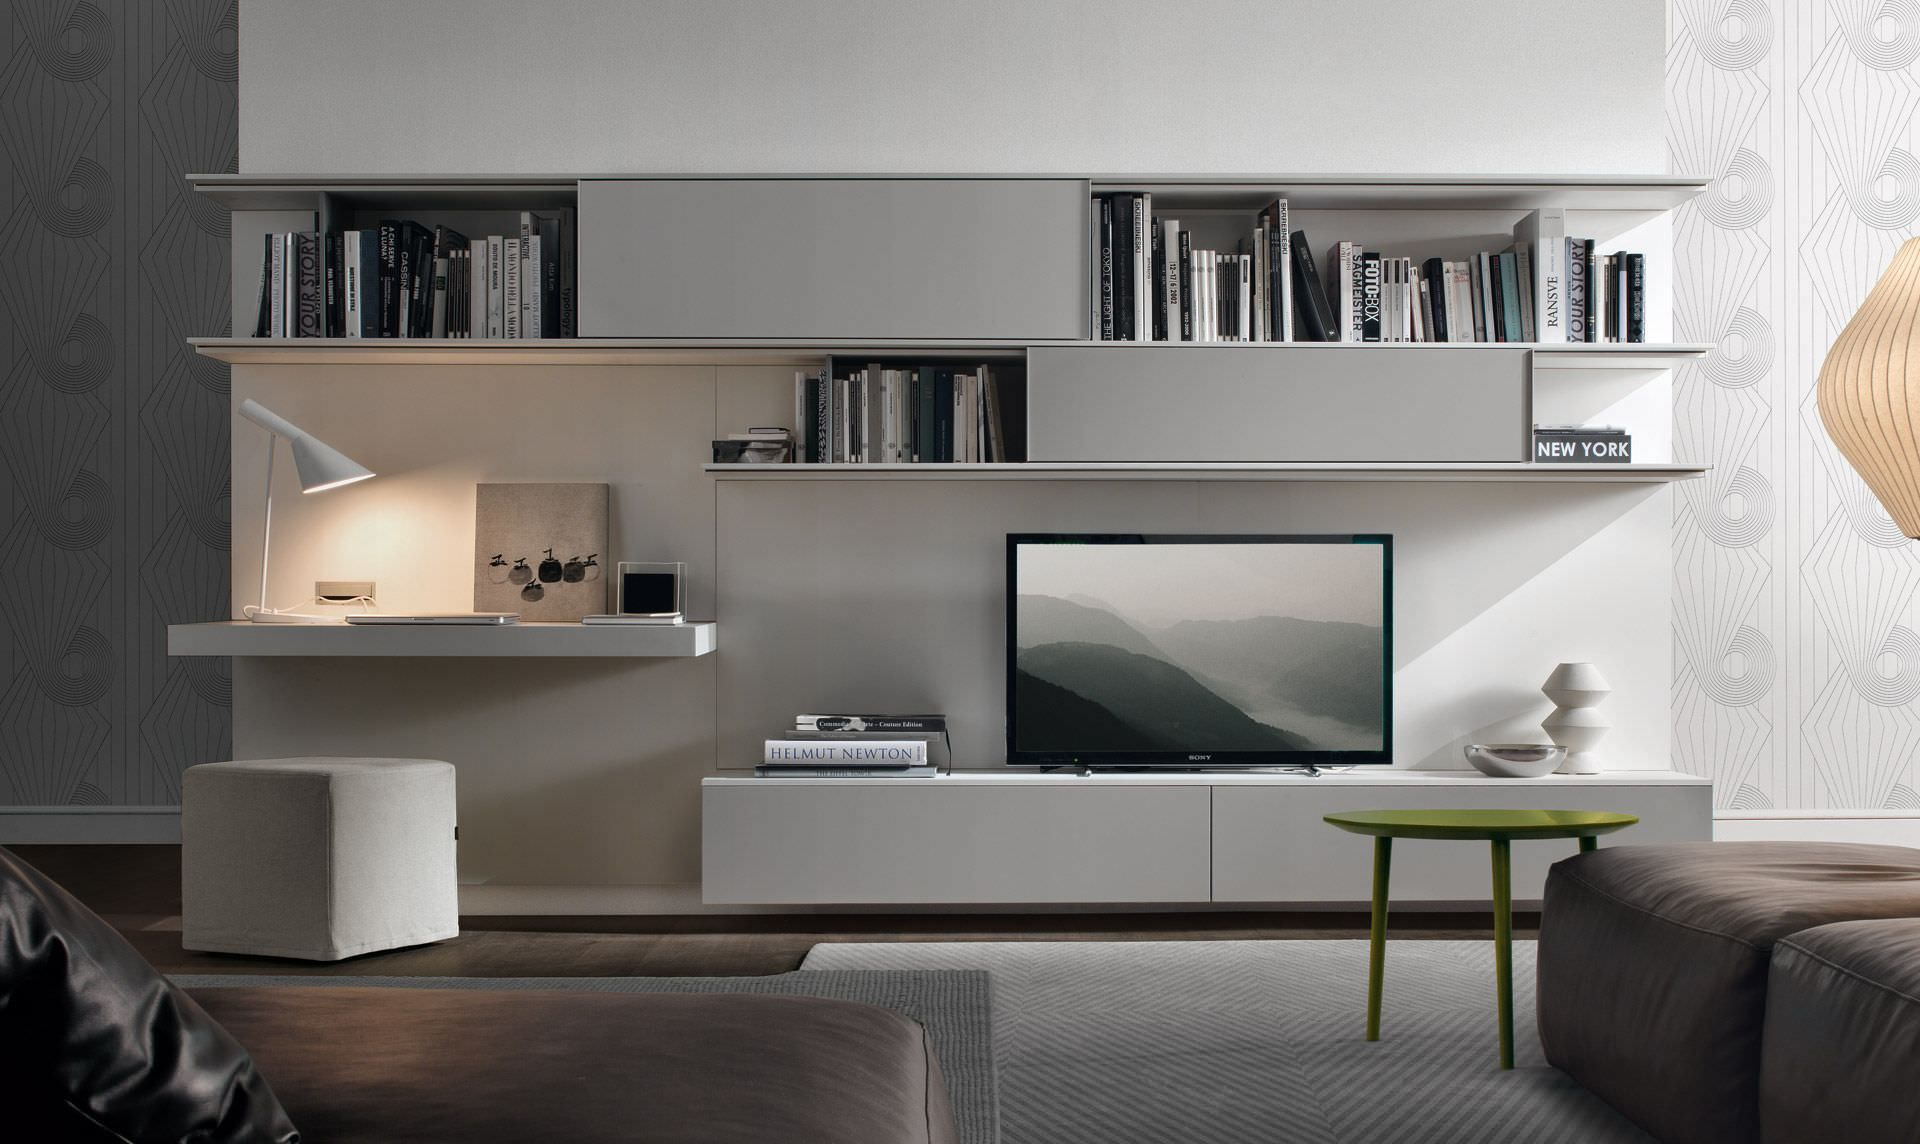 tv bookcase living units ideas livings for over bespoke storage room regarding and fitted of bookcases cabinets wall